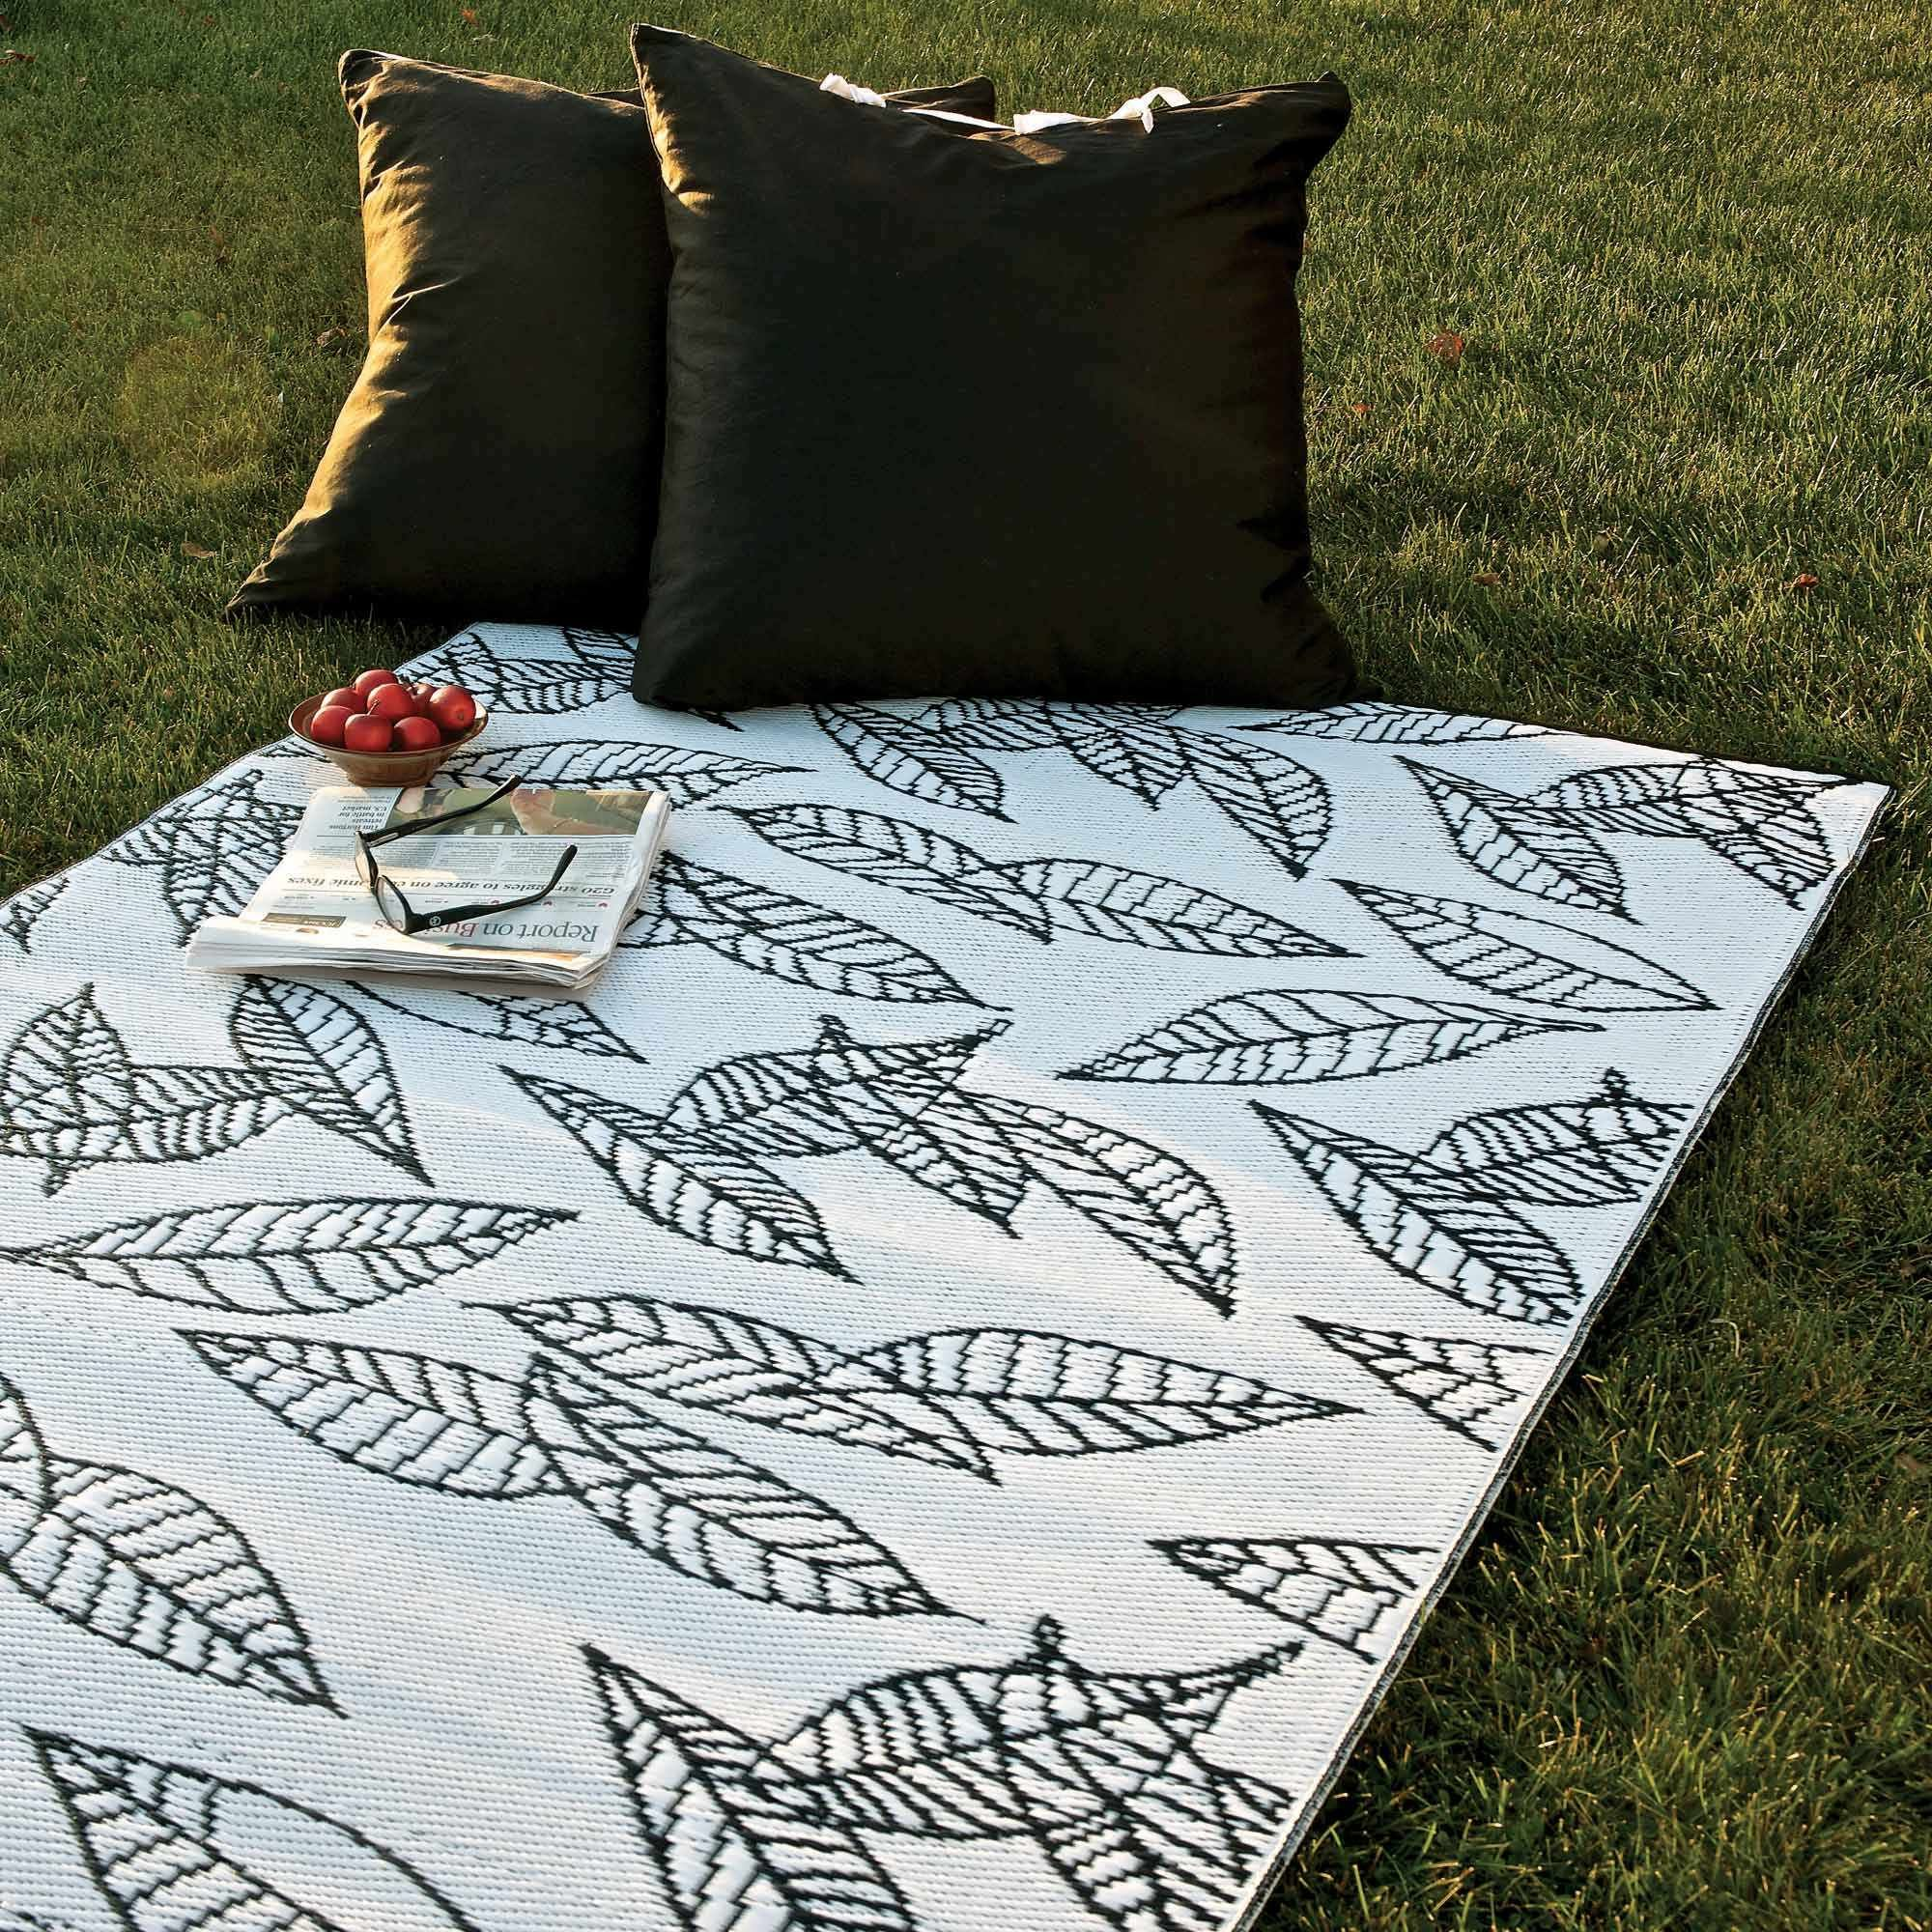 Portrait Of Recycled Plastic Outdoor Rugs Environmentally Friendly Choice